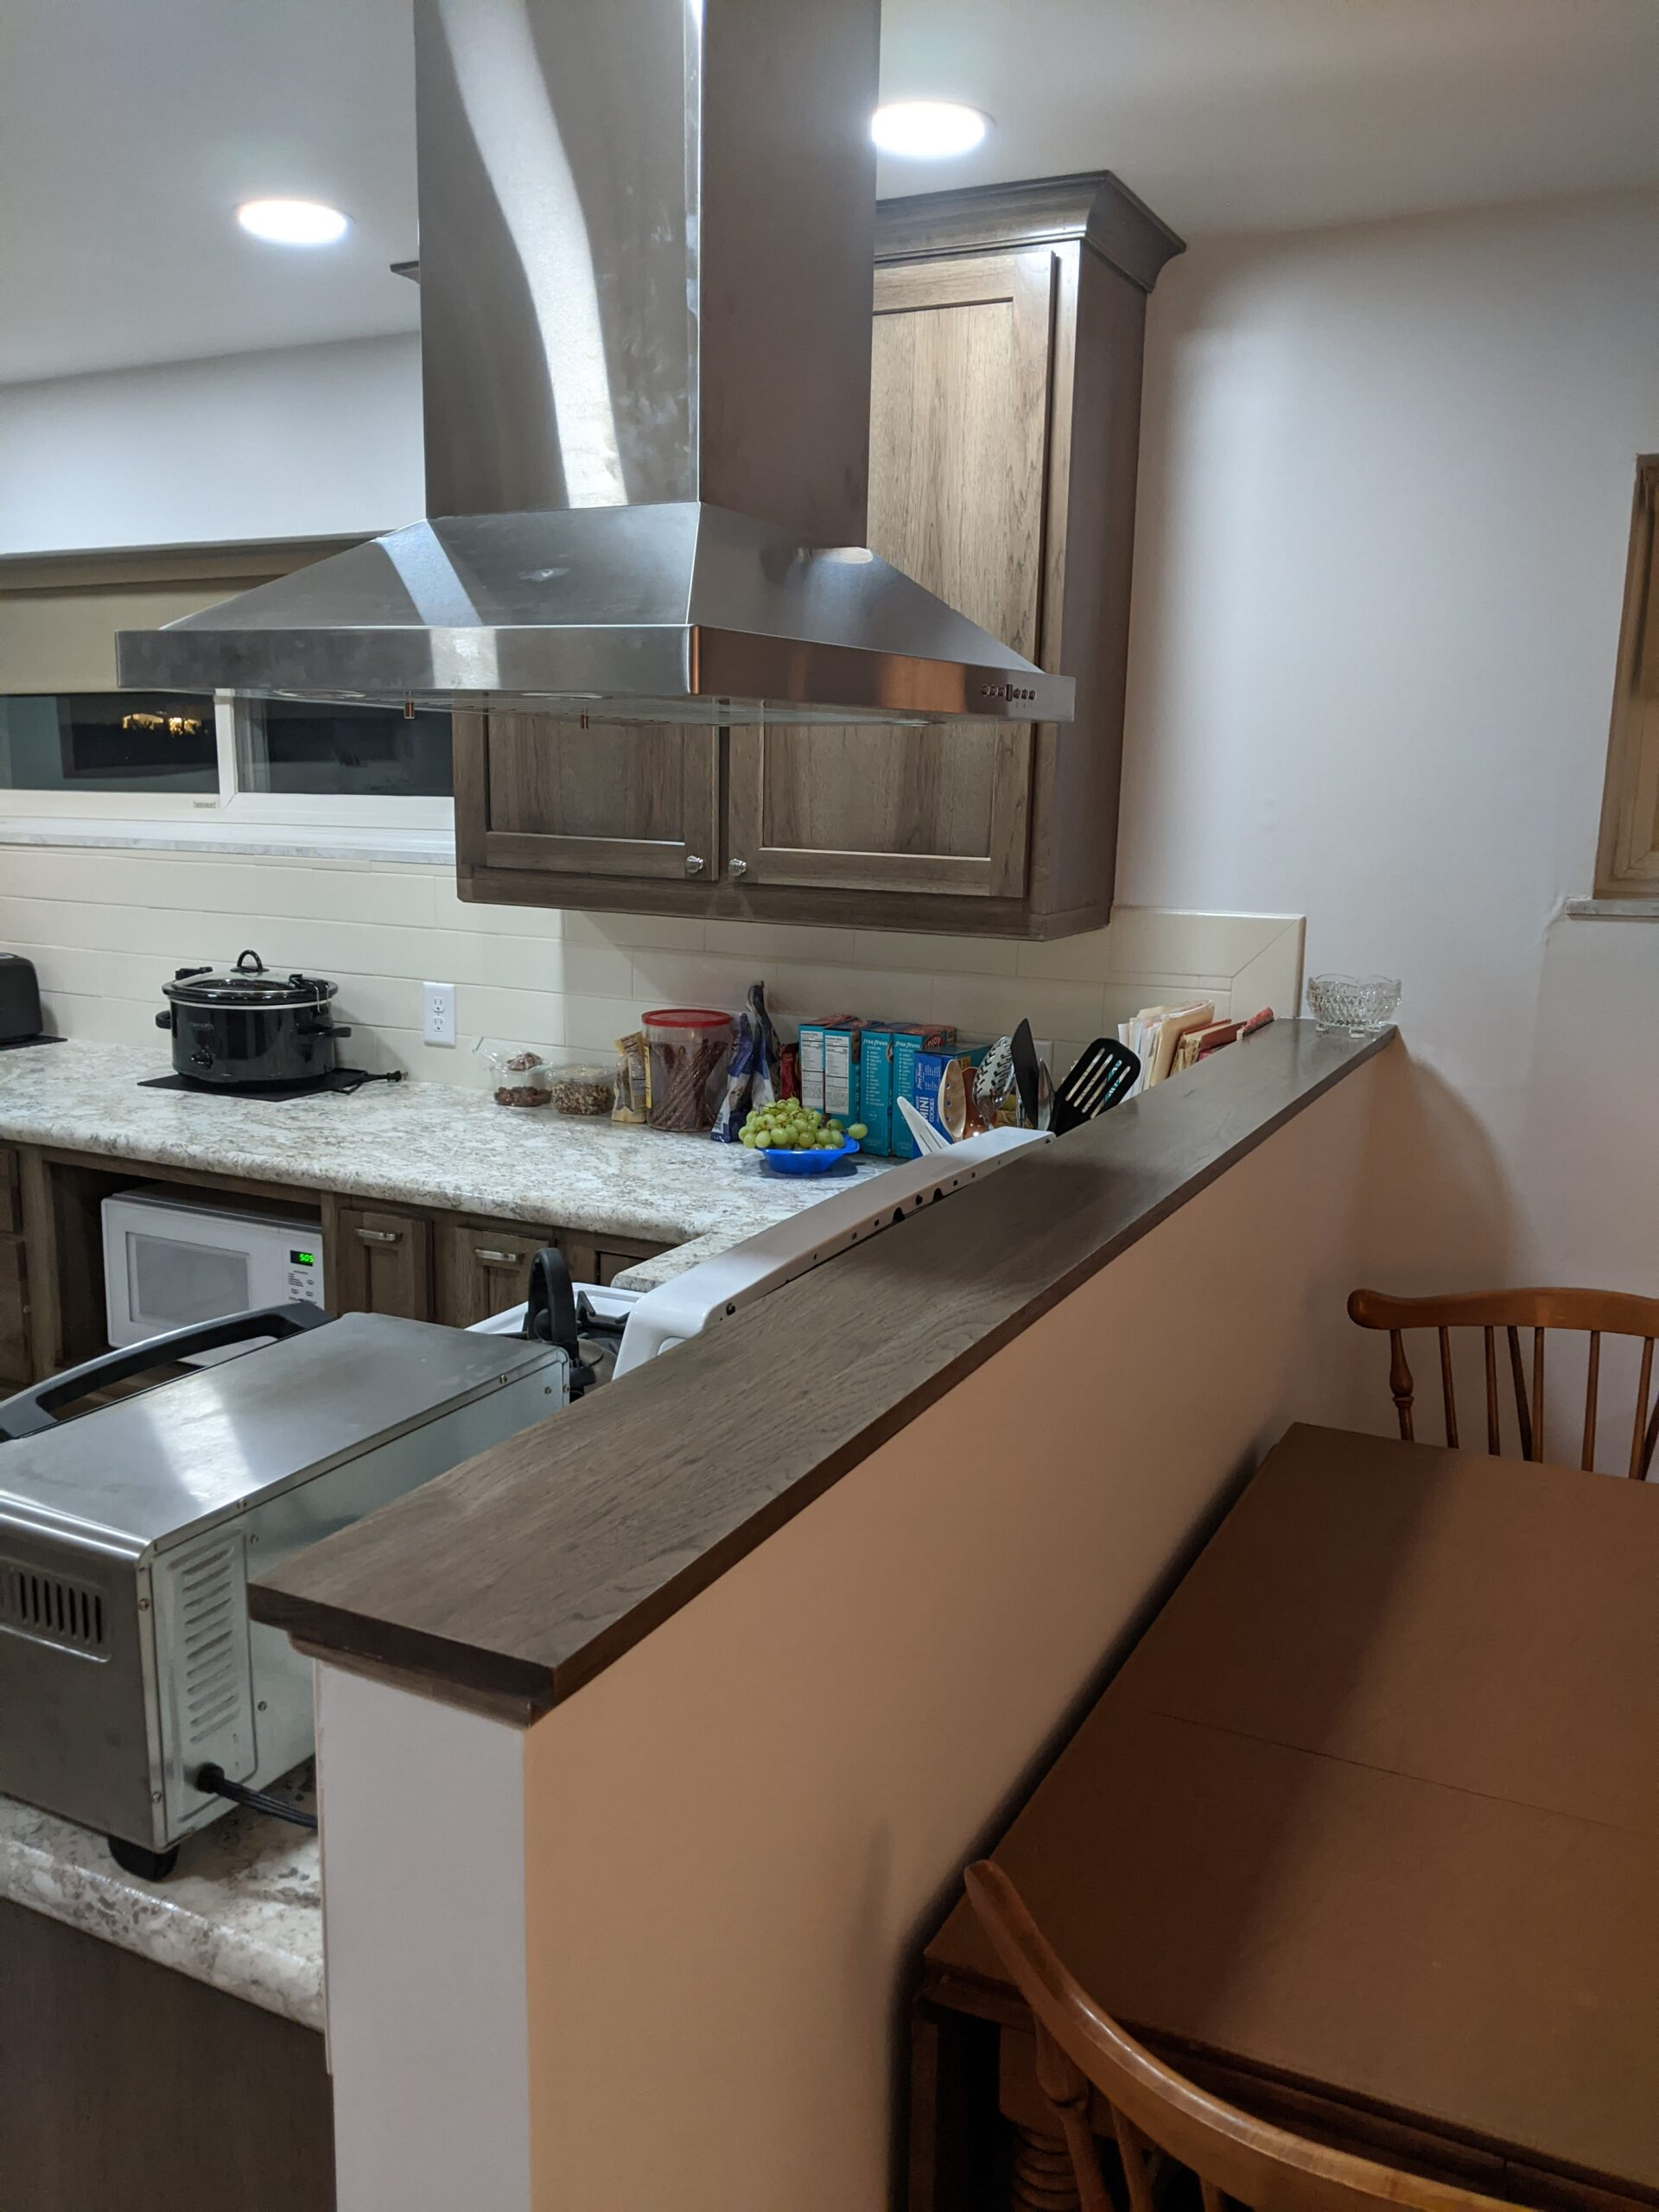 Removing the upper cabinets and adding a chimney hood opens up the area looking into the kitchen